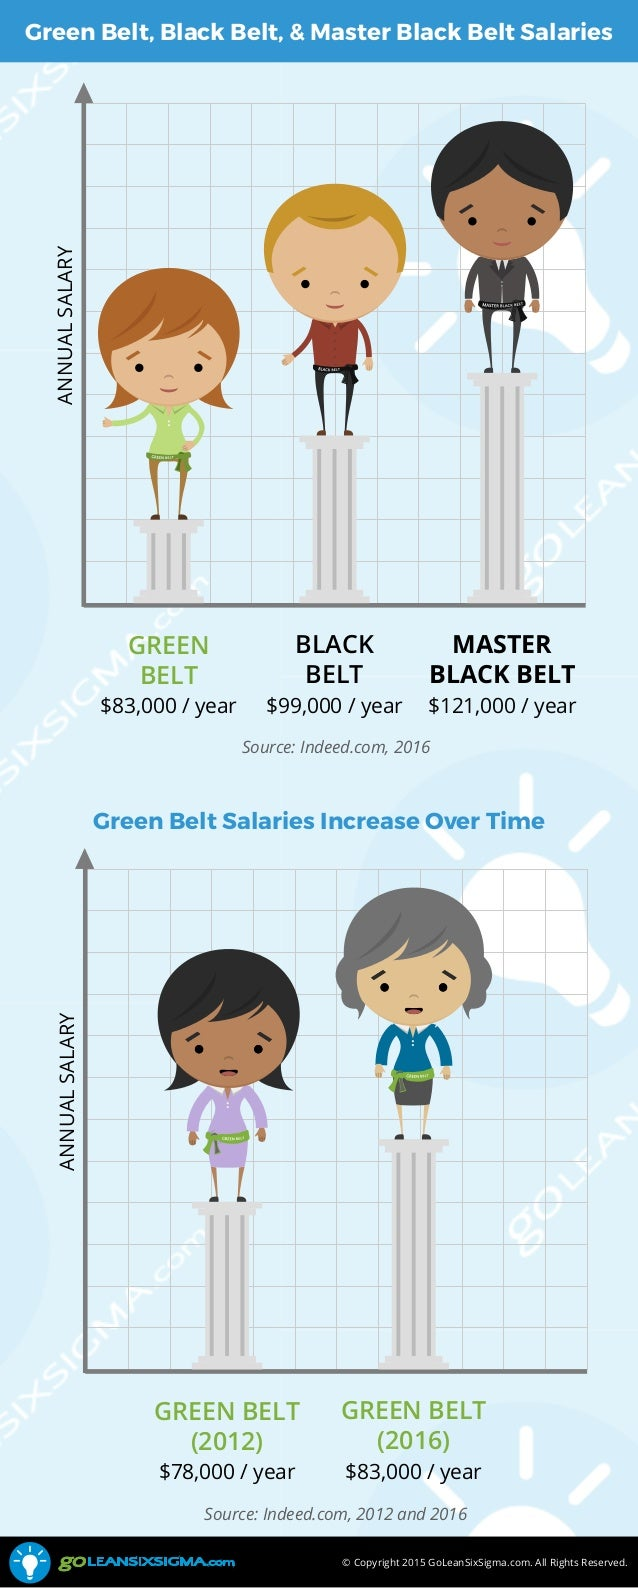 Master black belt salary best image of belt quality cssbb six sigma black belt certification canadian scitech xflitez Image collections